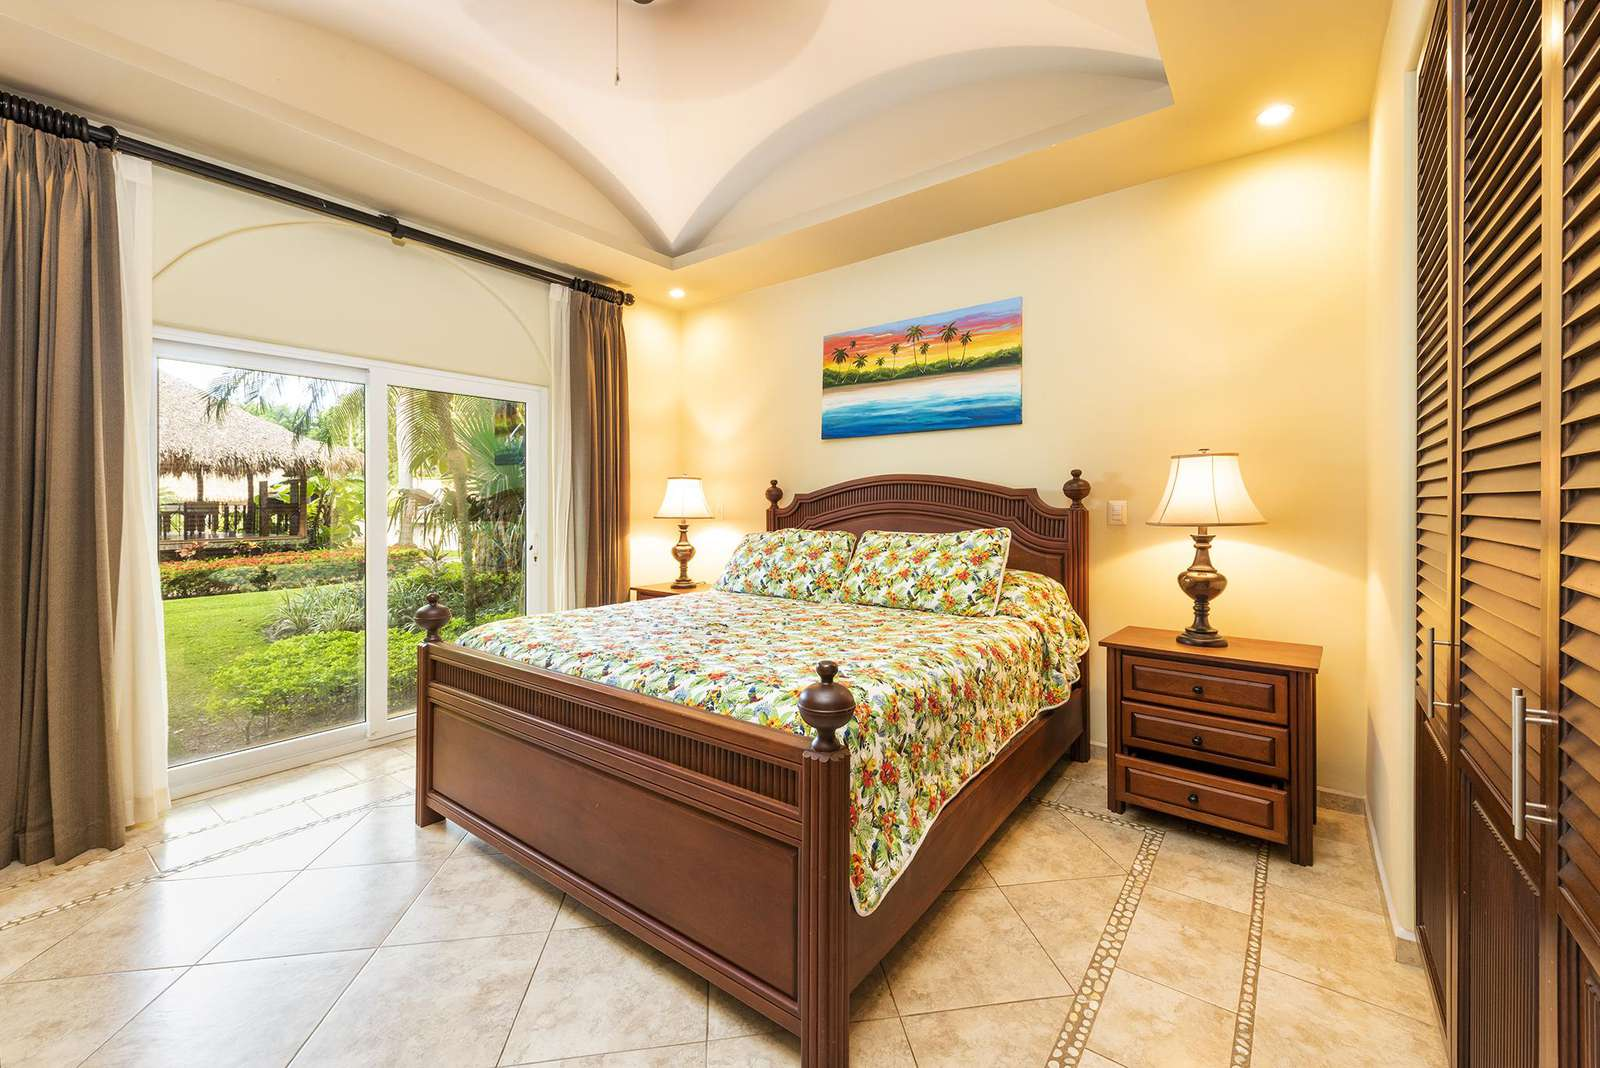 Master Bedroom, King Bed, Full Private bathroom